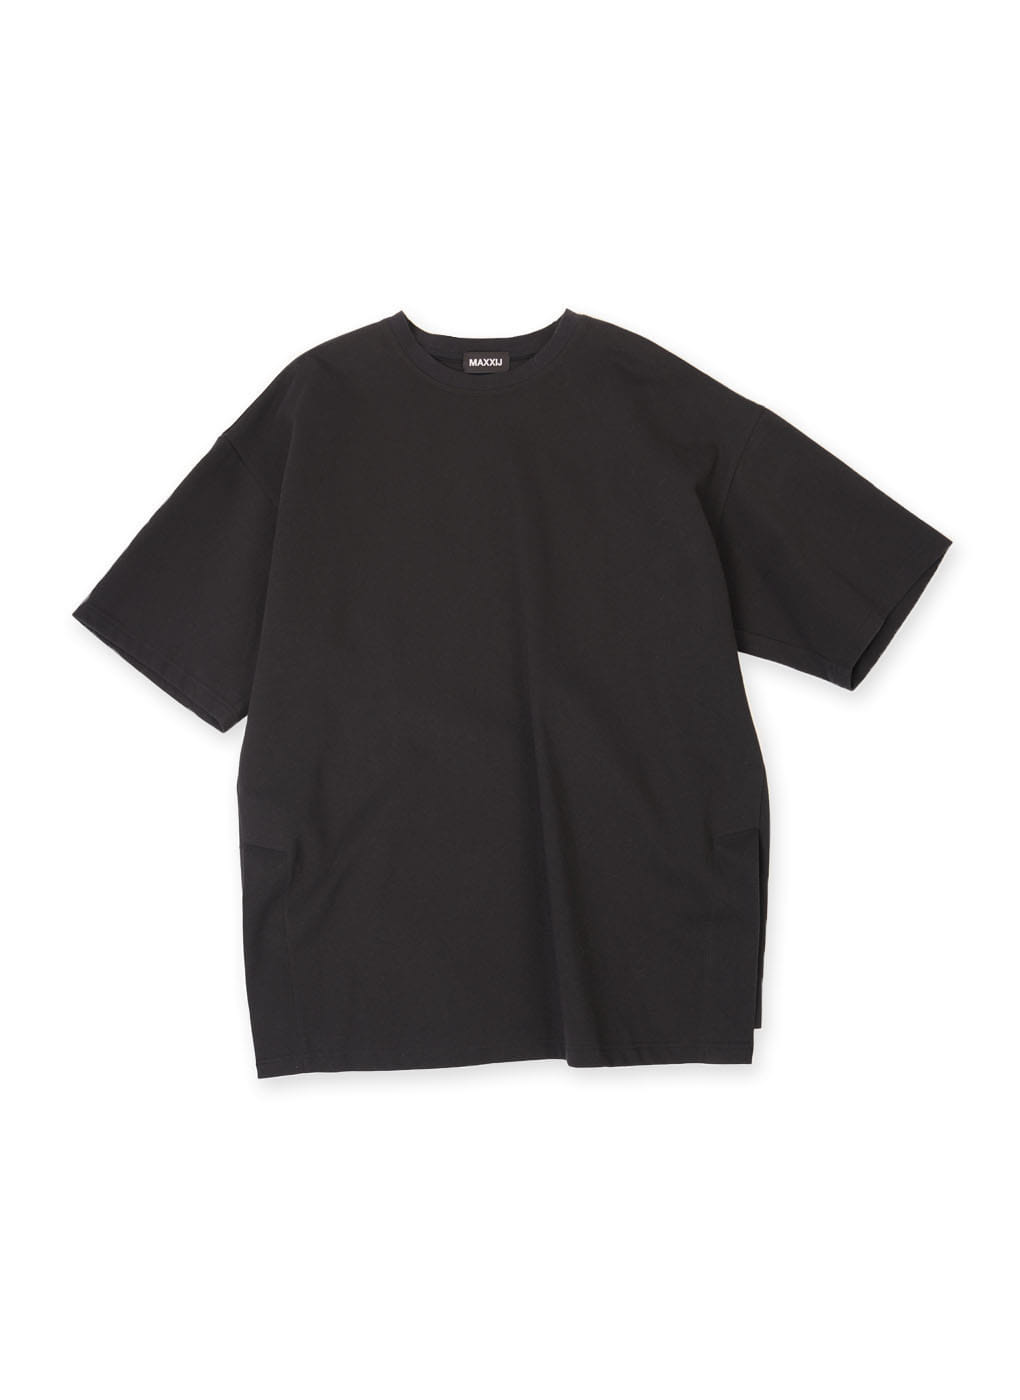 Black Oversized Big Logo Printed T-shirt